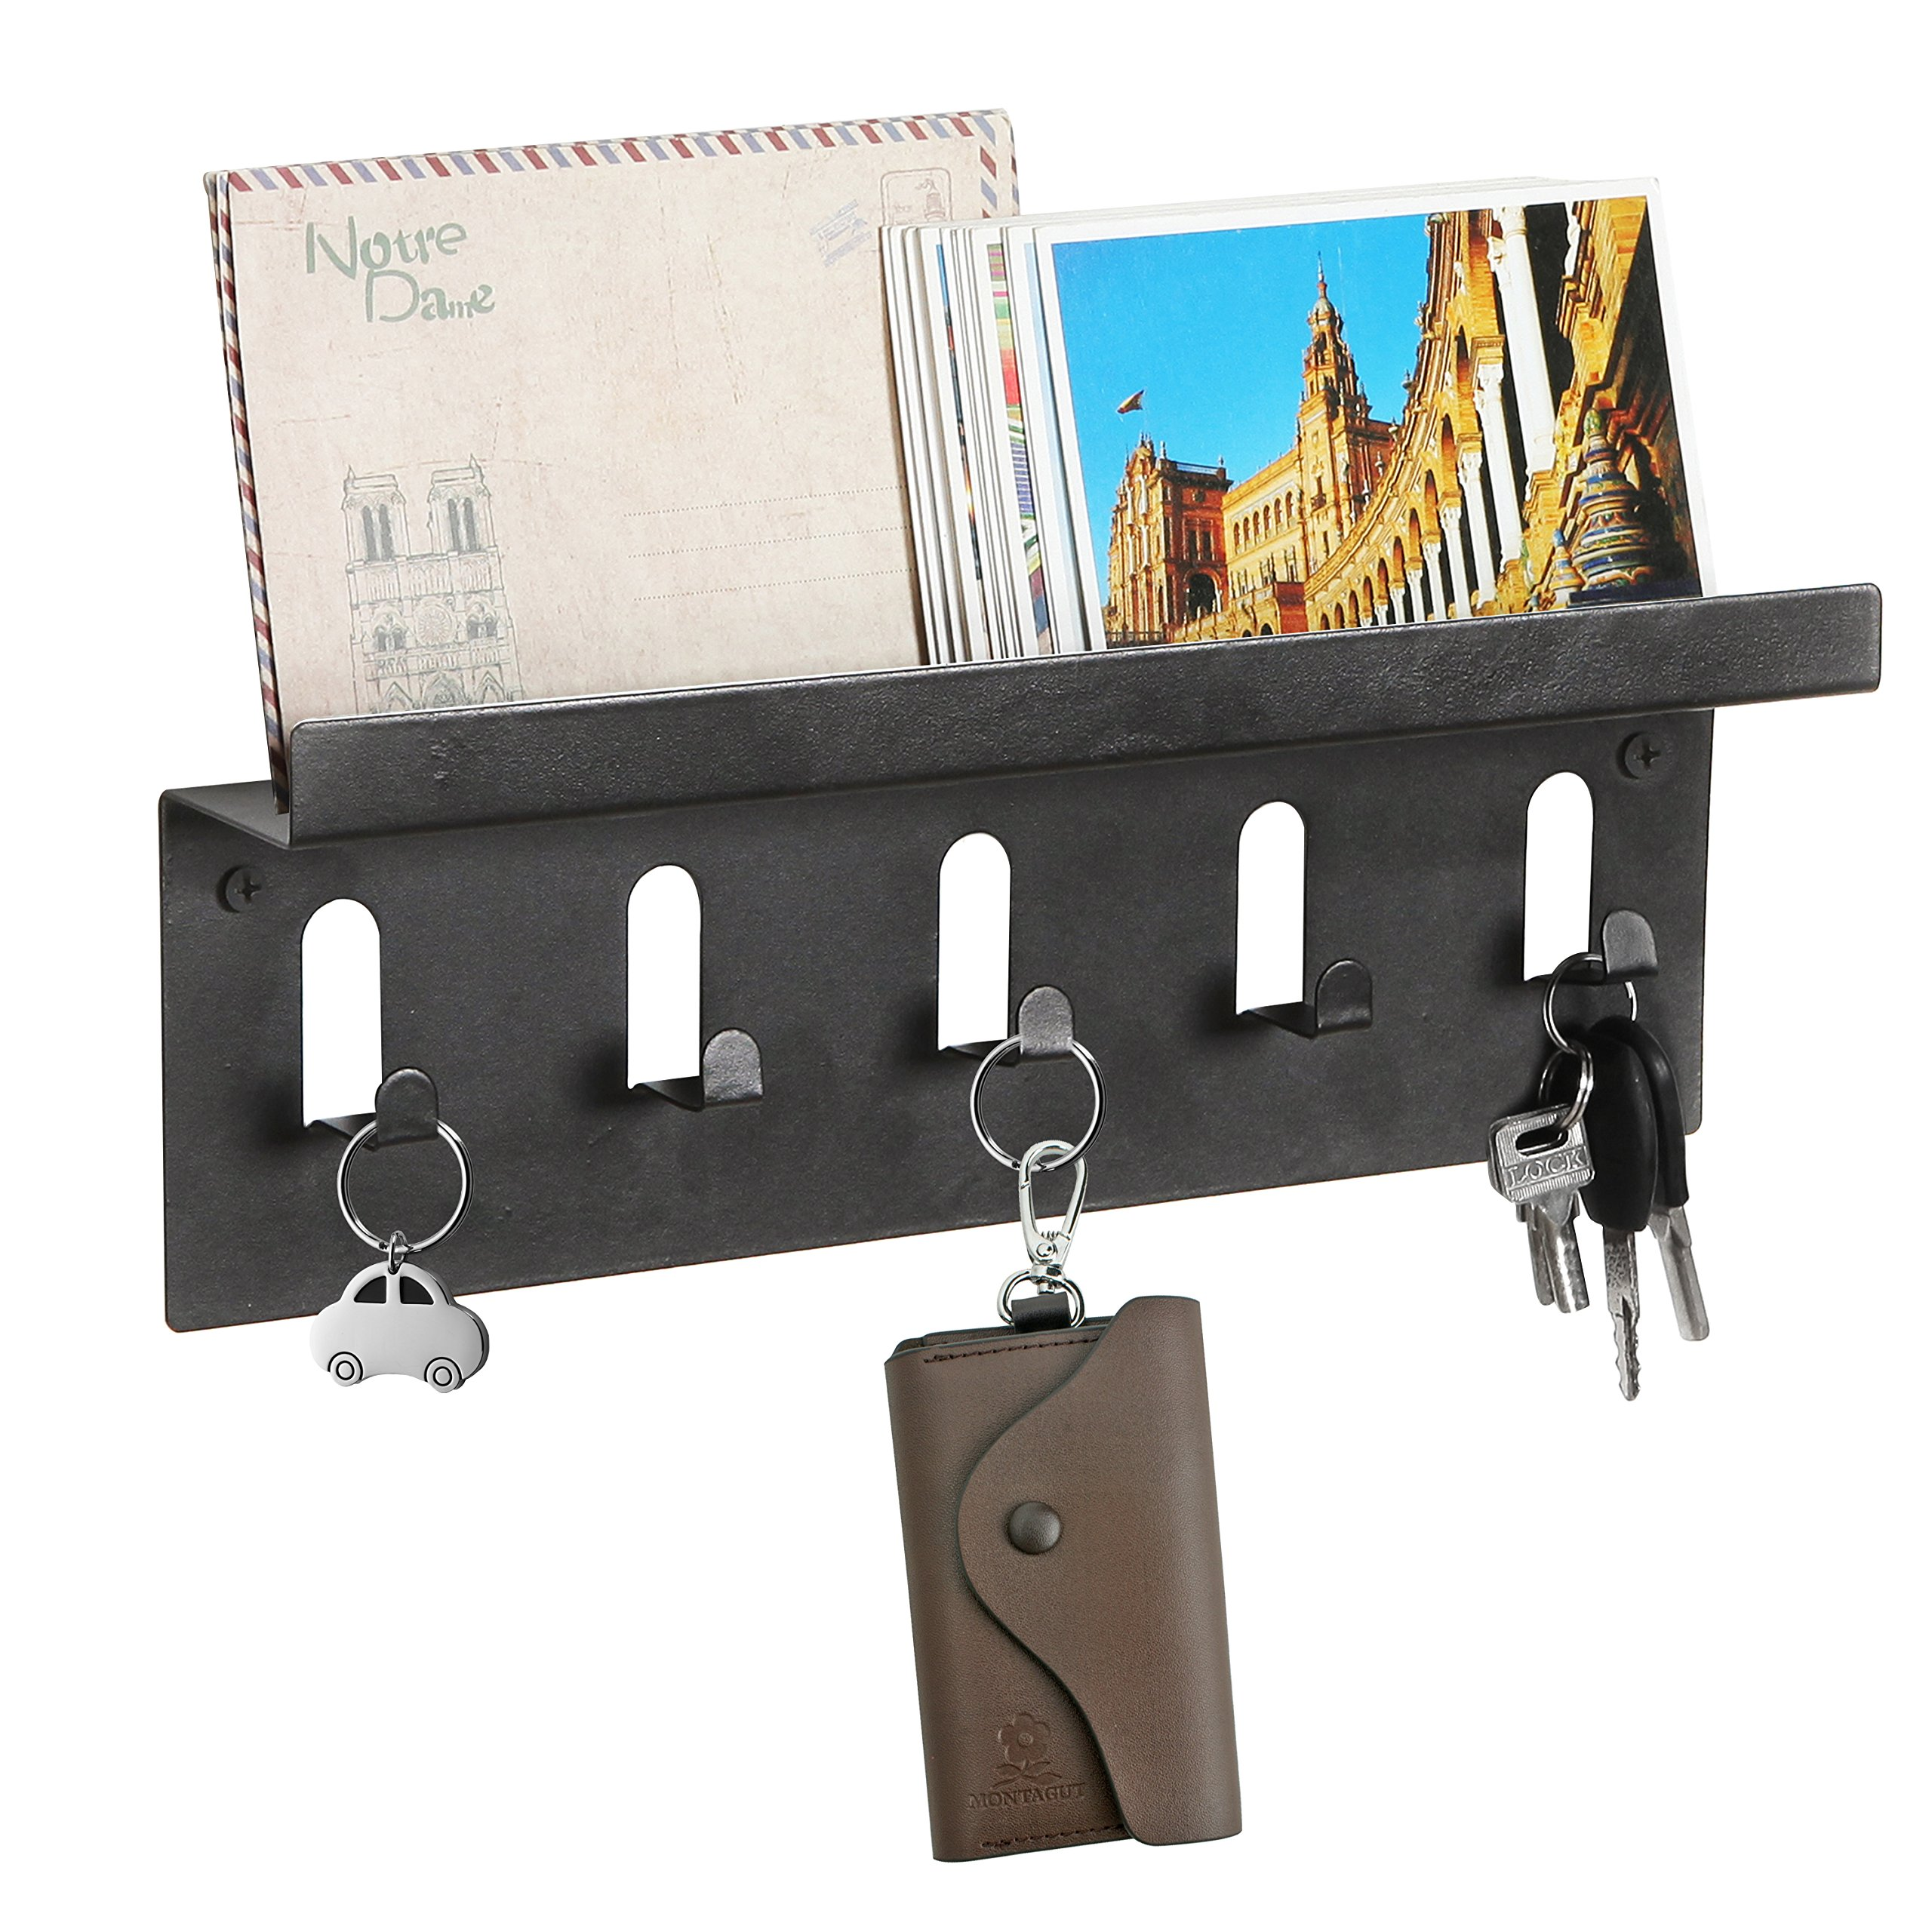 MyGift Wall Mounted Mail Holder Shelf w/ 5 Key Hooks, Organizer Storage Rack, Black